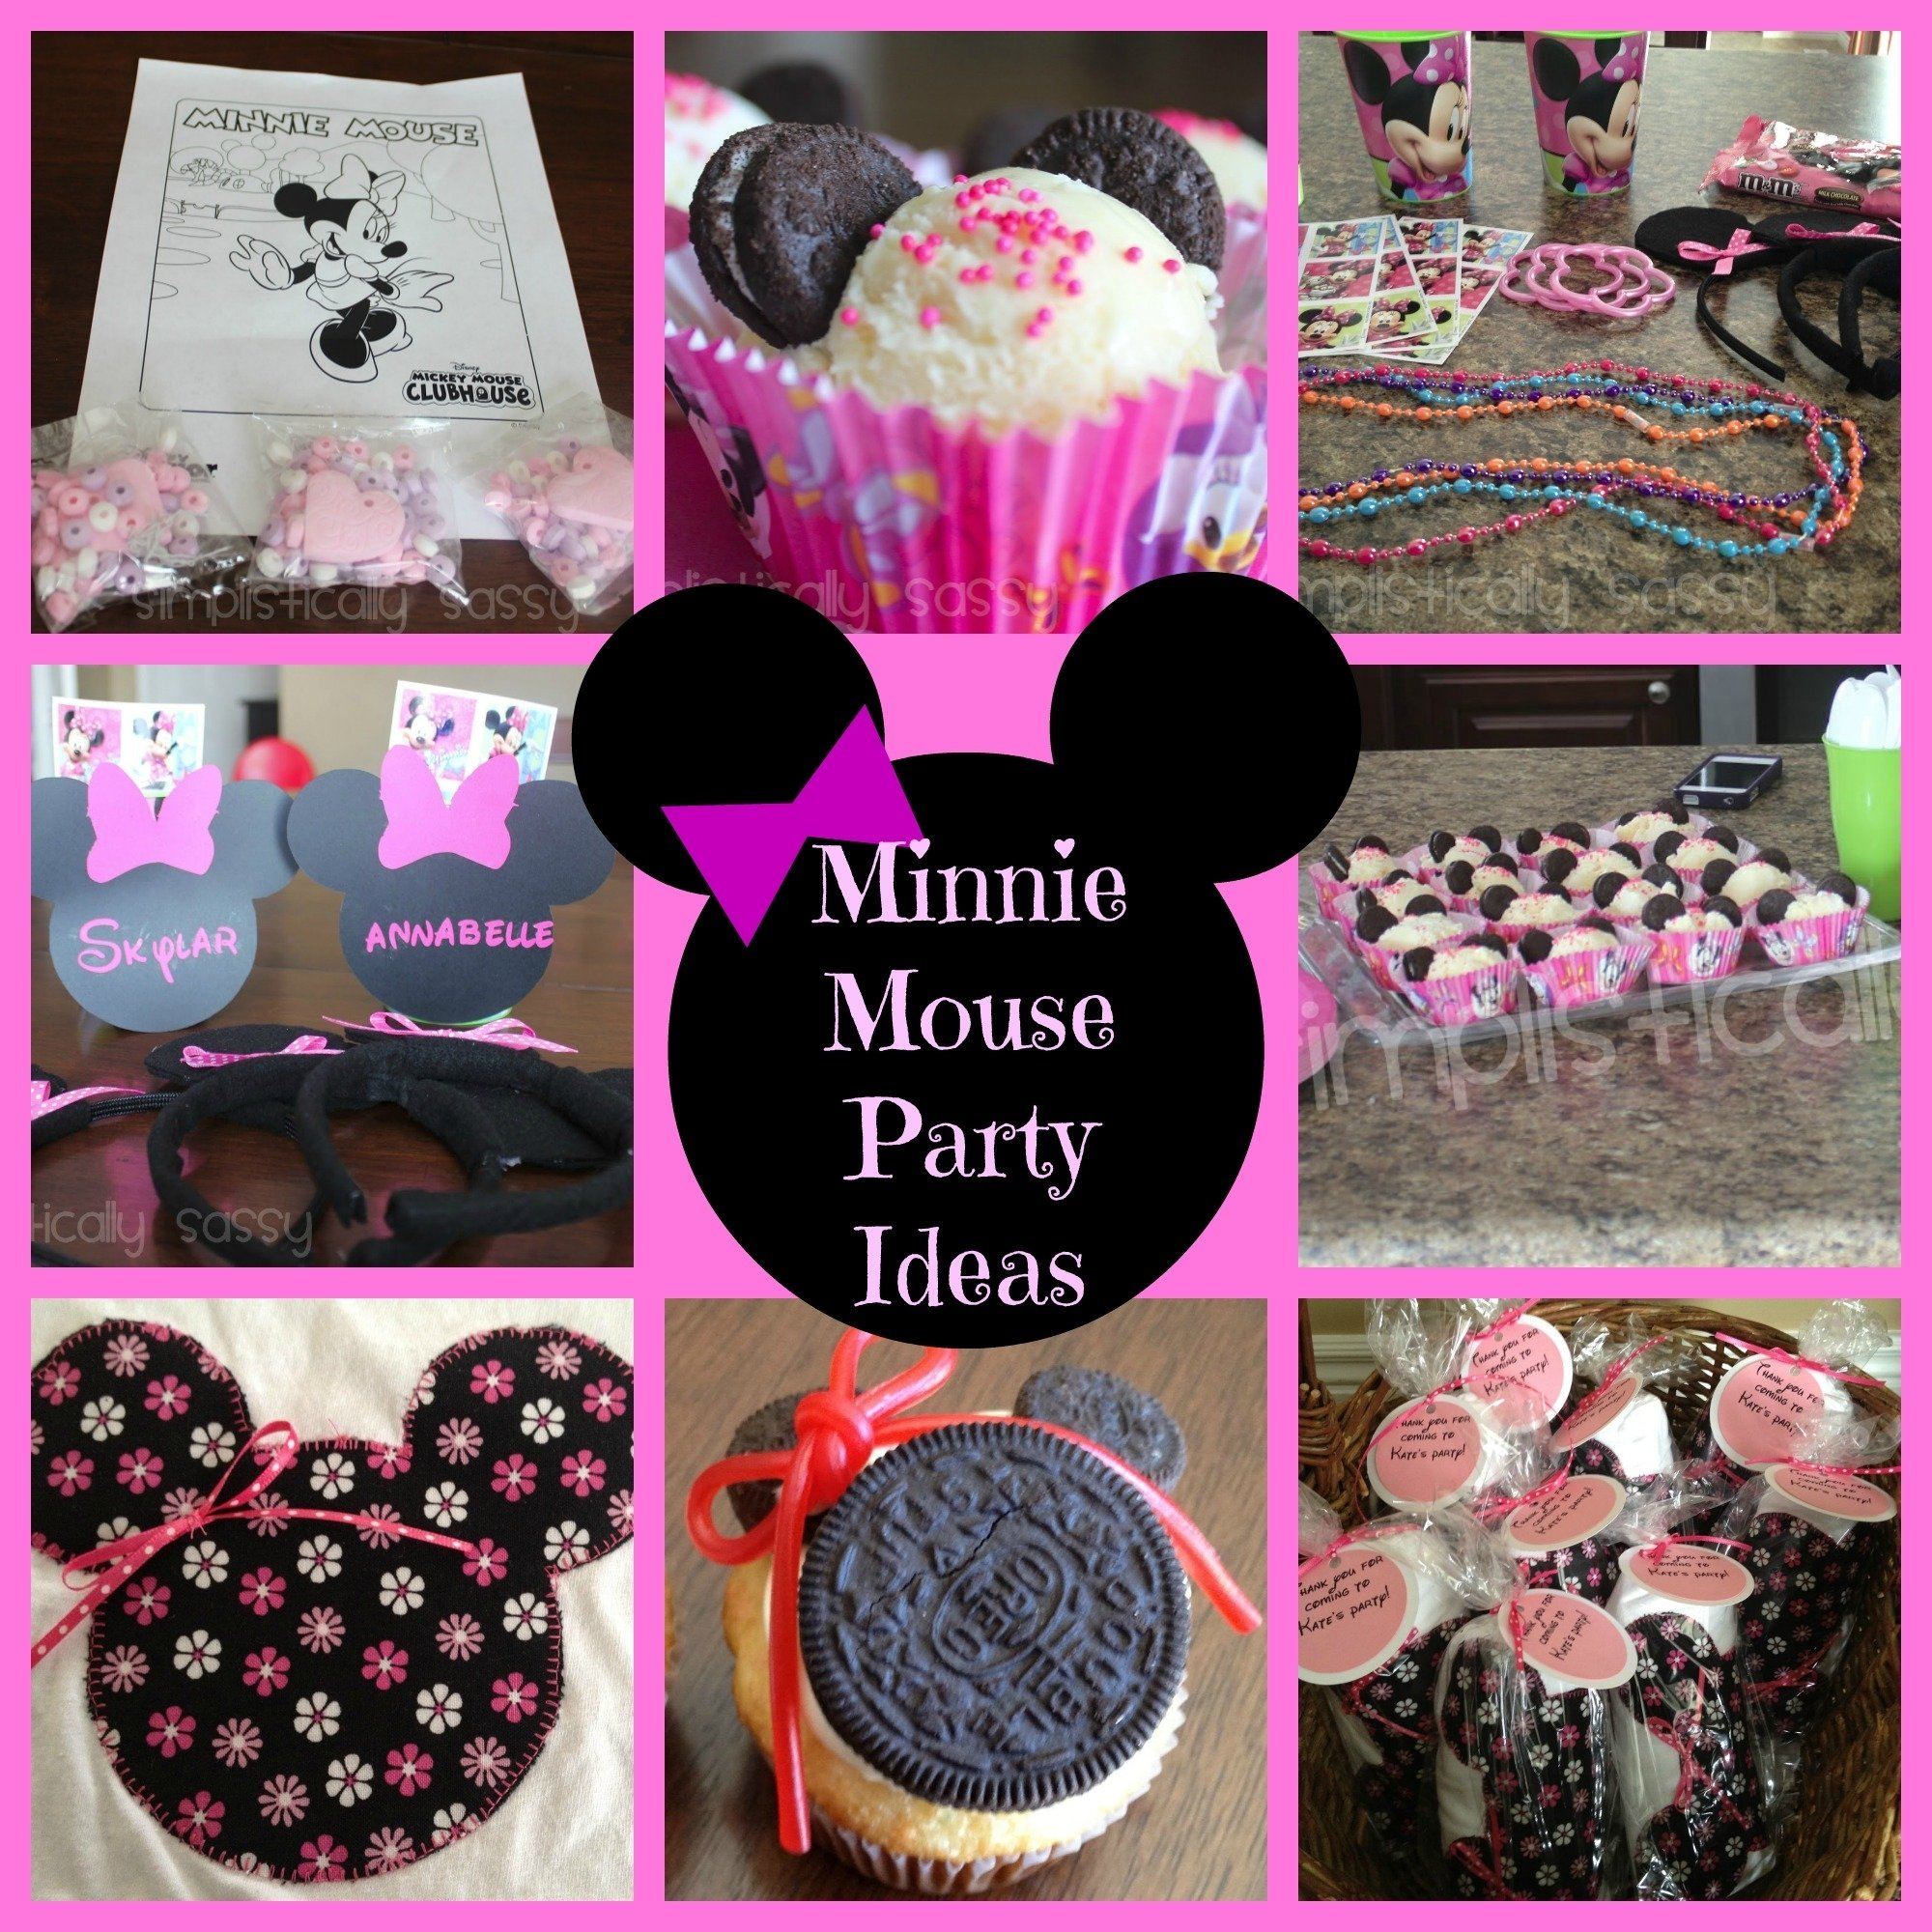 10 Elegant Minnie Mouse Birthday Party Ideas For A 2 Year Old minnie mouse party ideas events to celebrate 17 2020